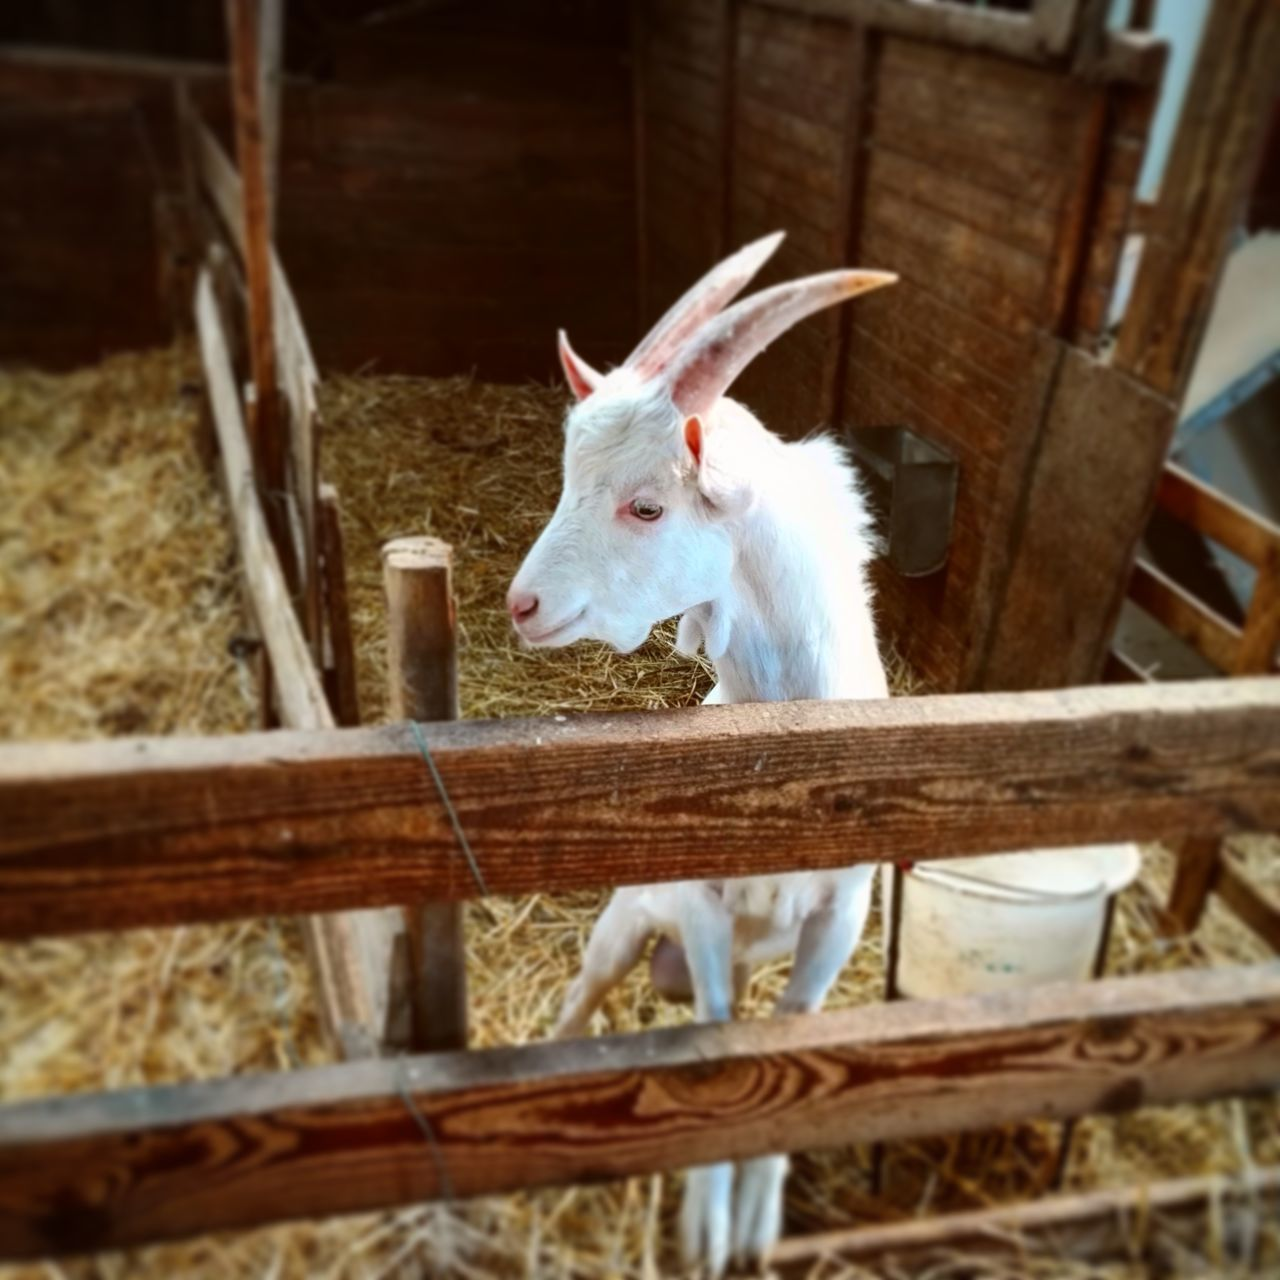 Animal Themes Domestic Animals One Animal Pets Mammal Wood - Material Animal Zoology Wooden House Peeking Front View Curiosity Selective Focus Reaching Day Animal Head  Goat